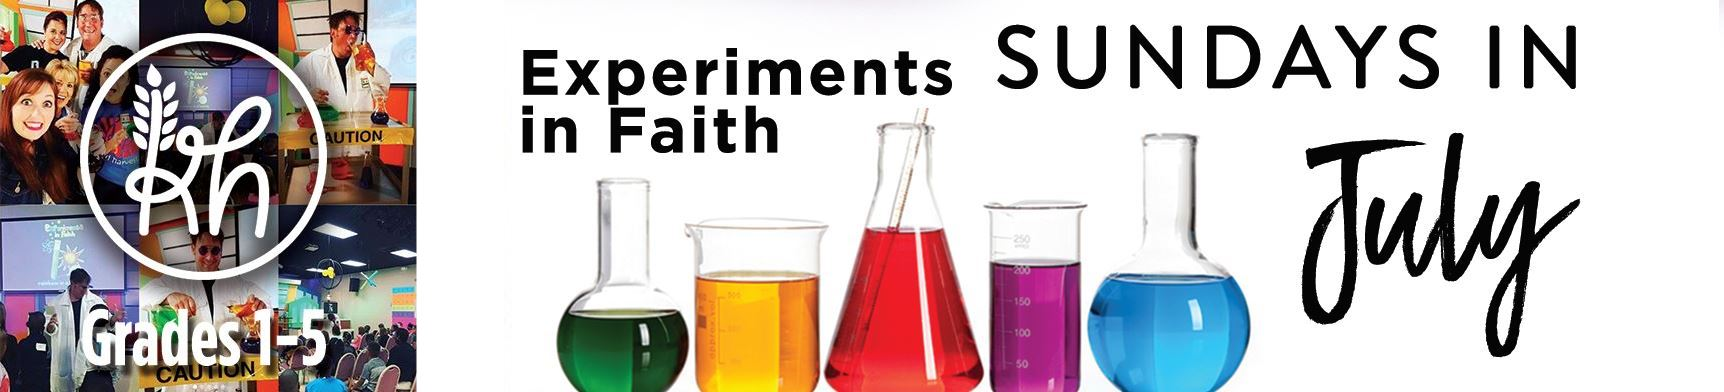 Experiments in Faith | Sundays in July | Kid Harvest, Grades 1-5